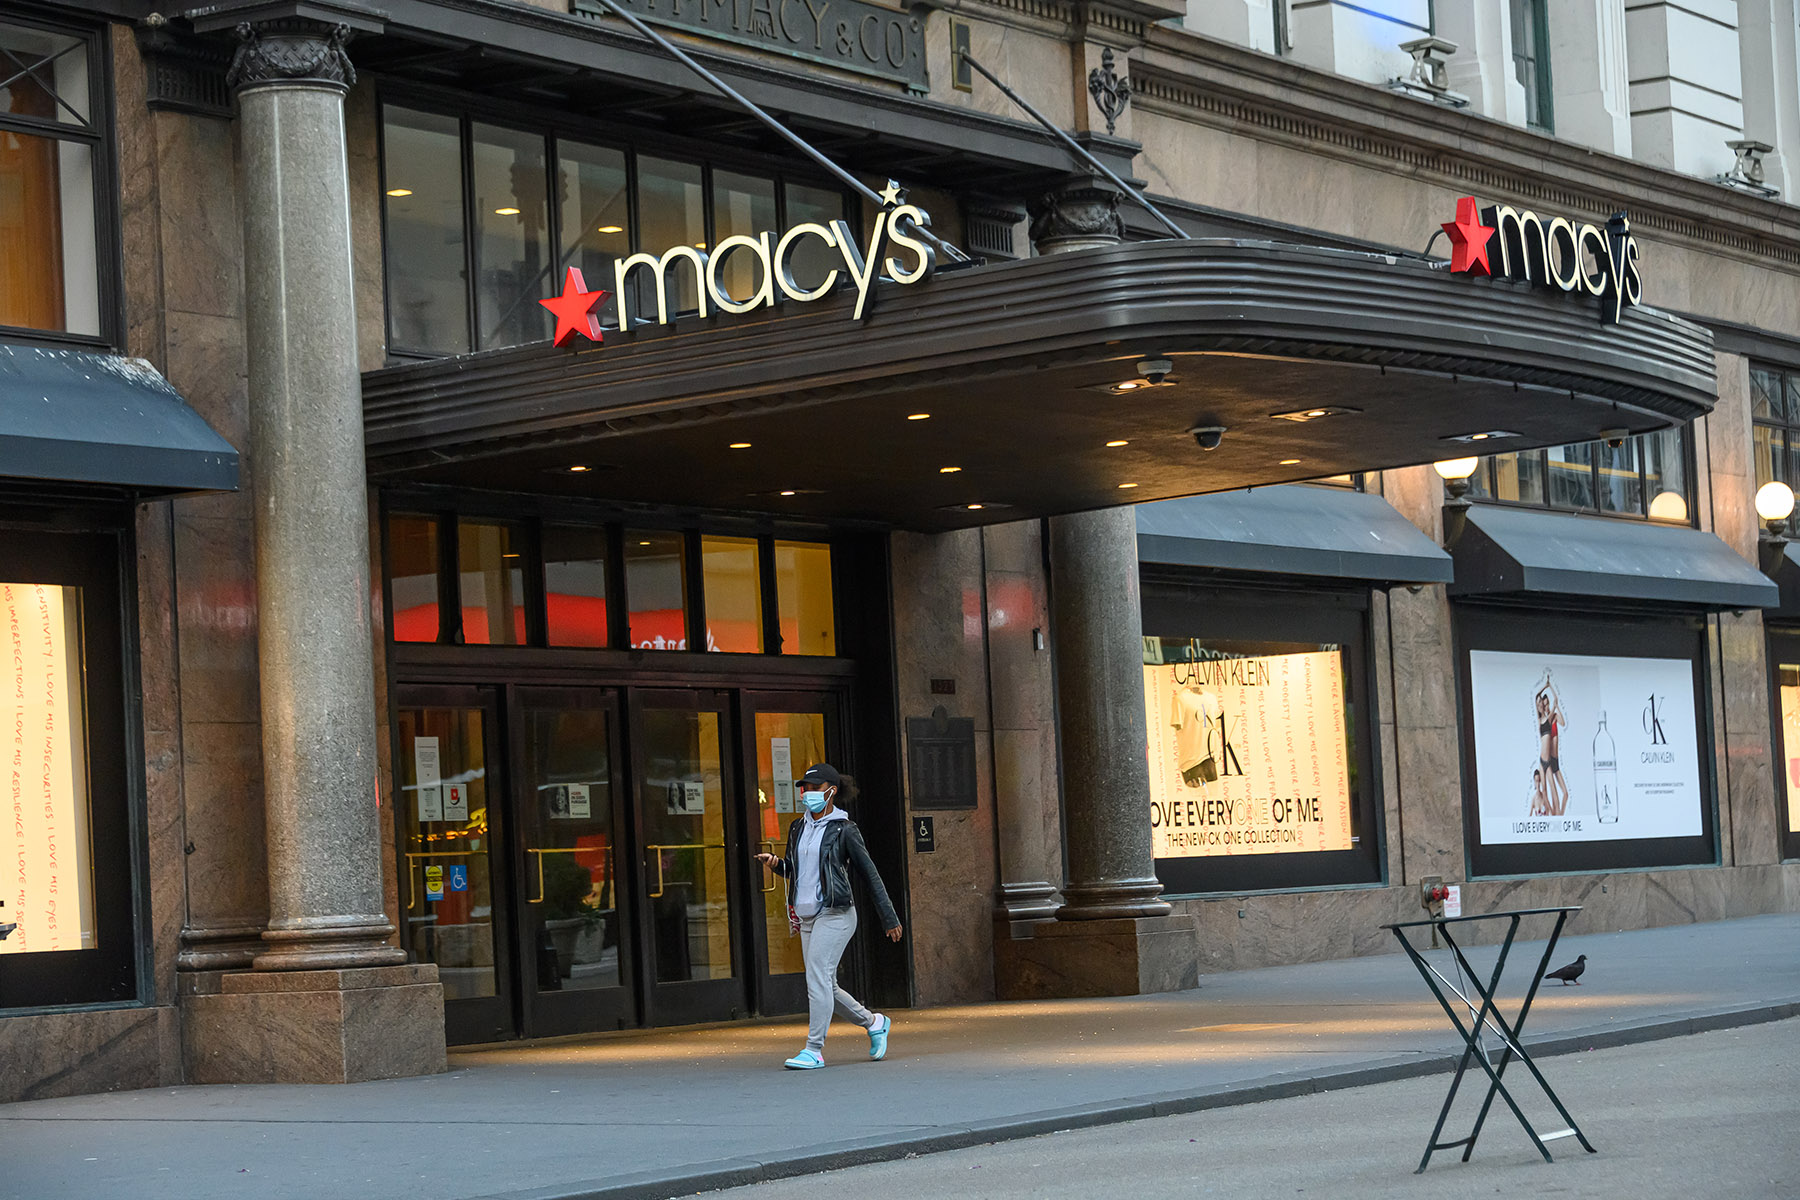 Macy?s reported a third-quarter sales decline of 23% compared to a year earlier. (Getty Images)